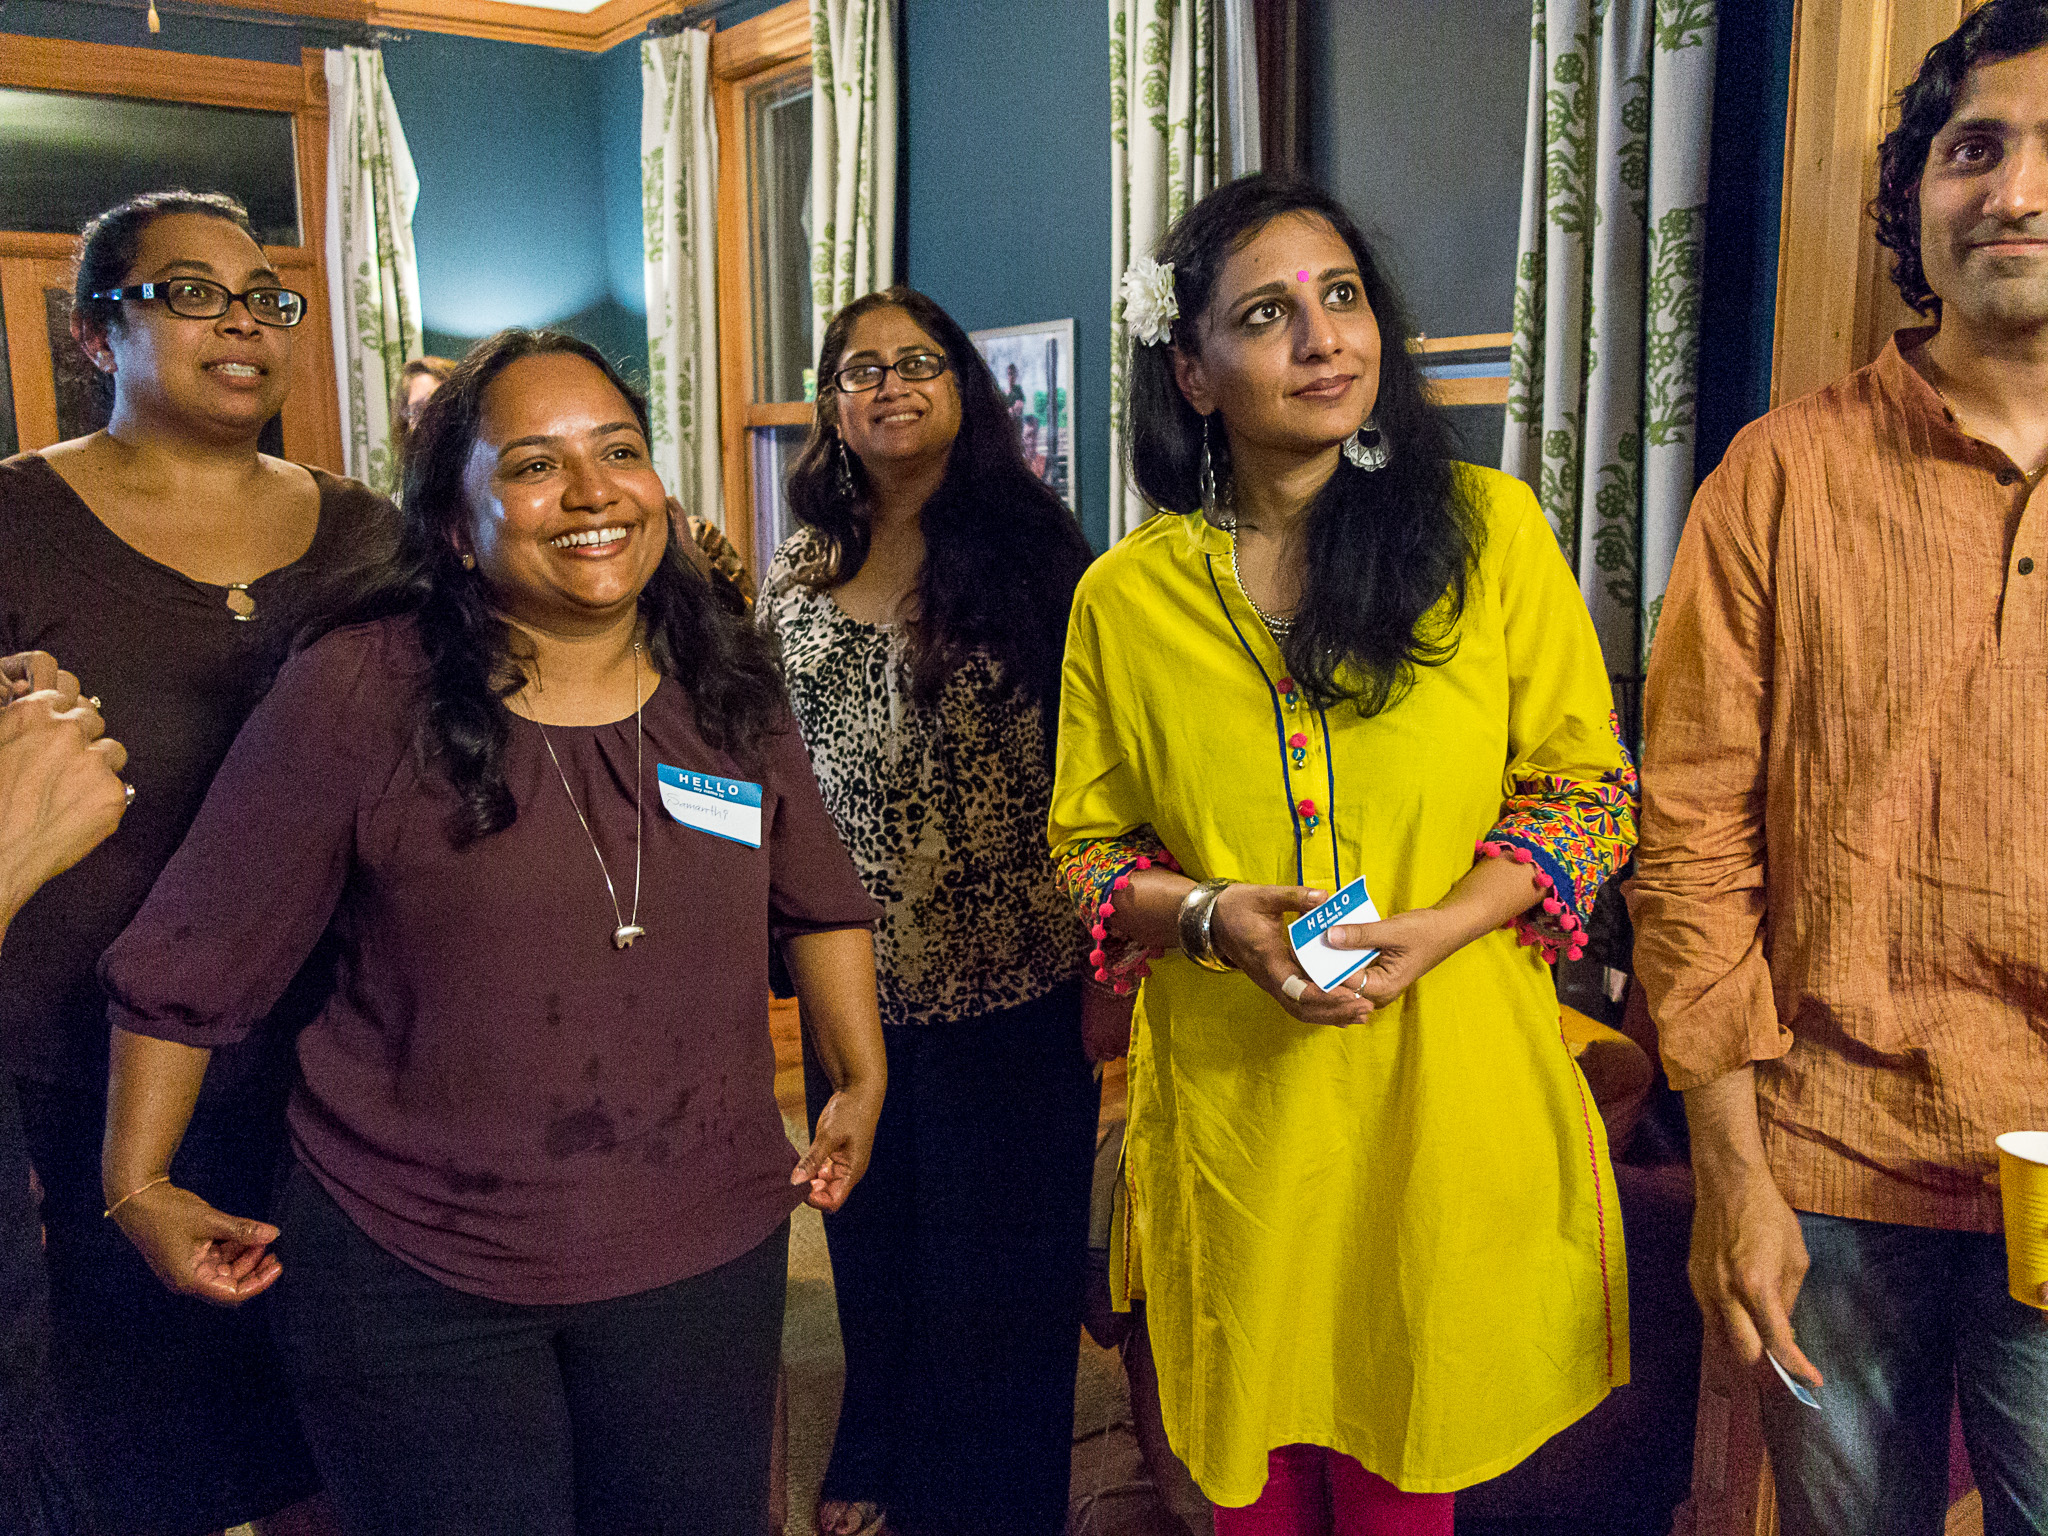 Festival volunteers Roshani Anandappa and Samanthi Hewakapuge, with panelists Shikha Malaviya, Neha Misra, and Arvind Venugopal at Thursday night panelist dinner